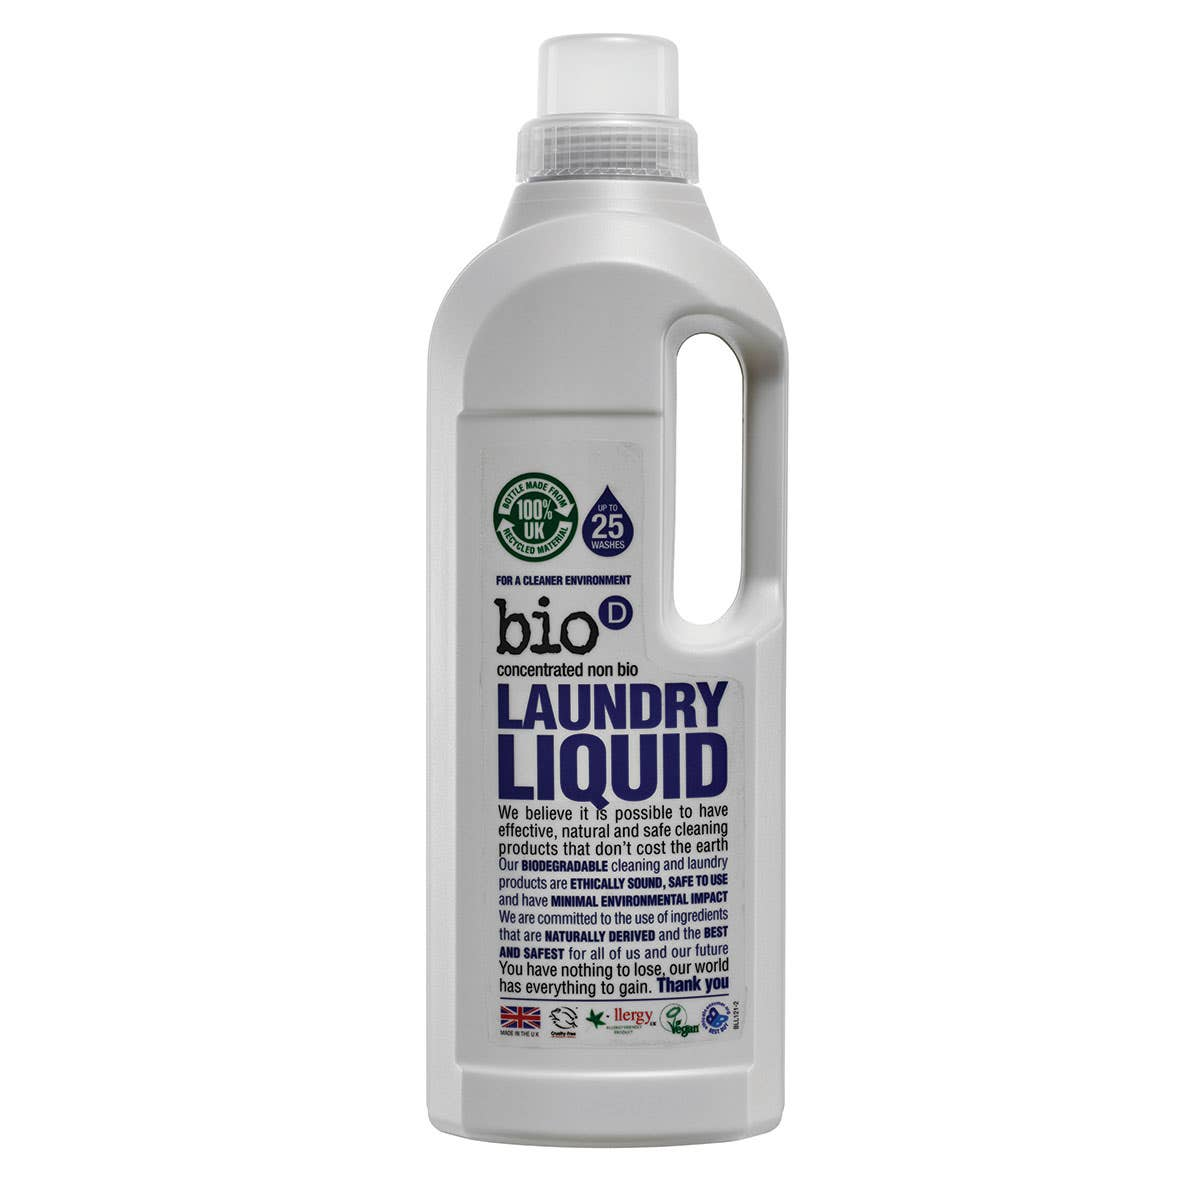 Bio-D Fragrance-Free Laundry Liquid (1 Litre)